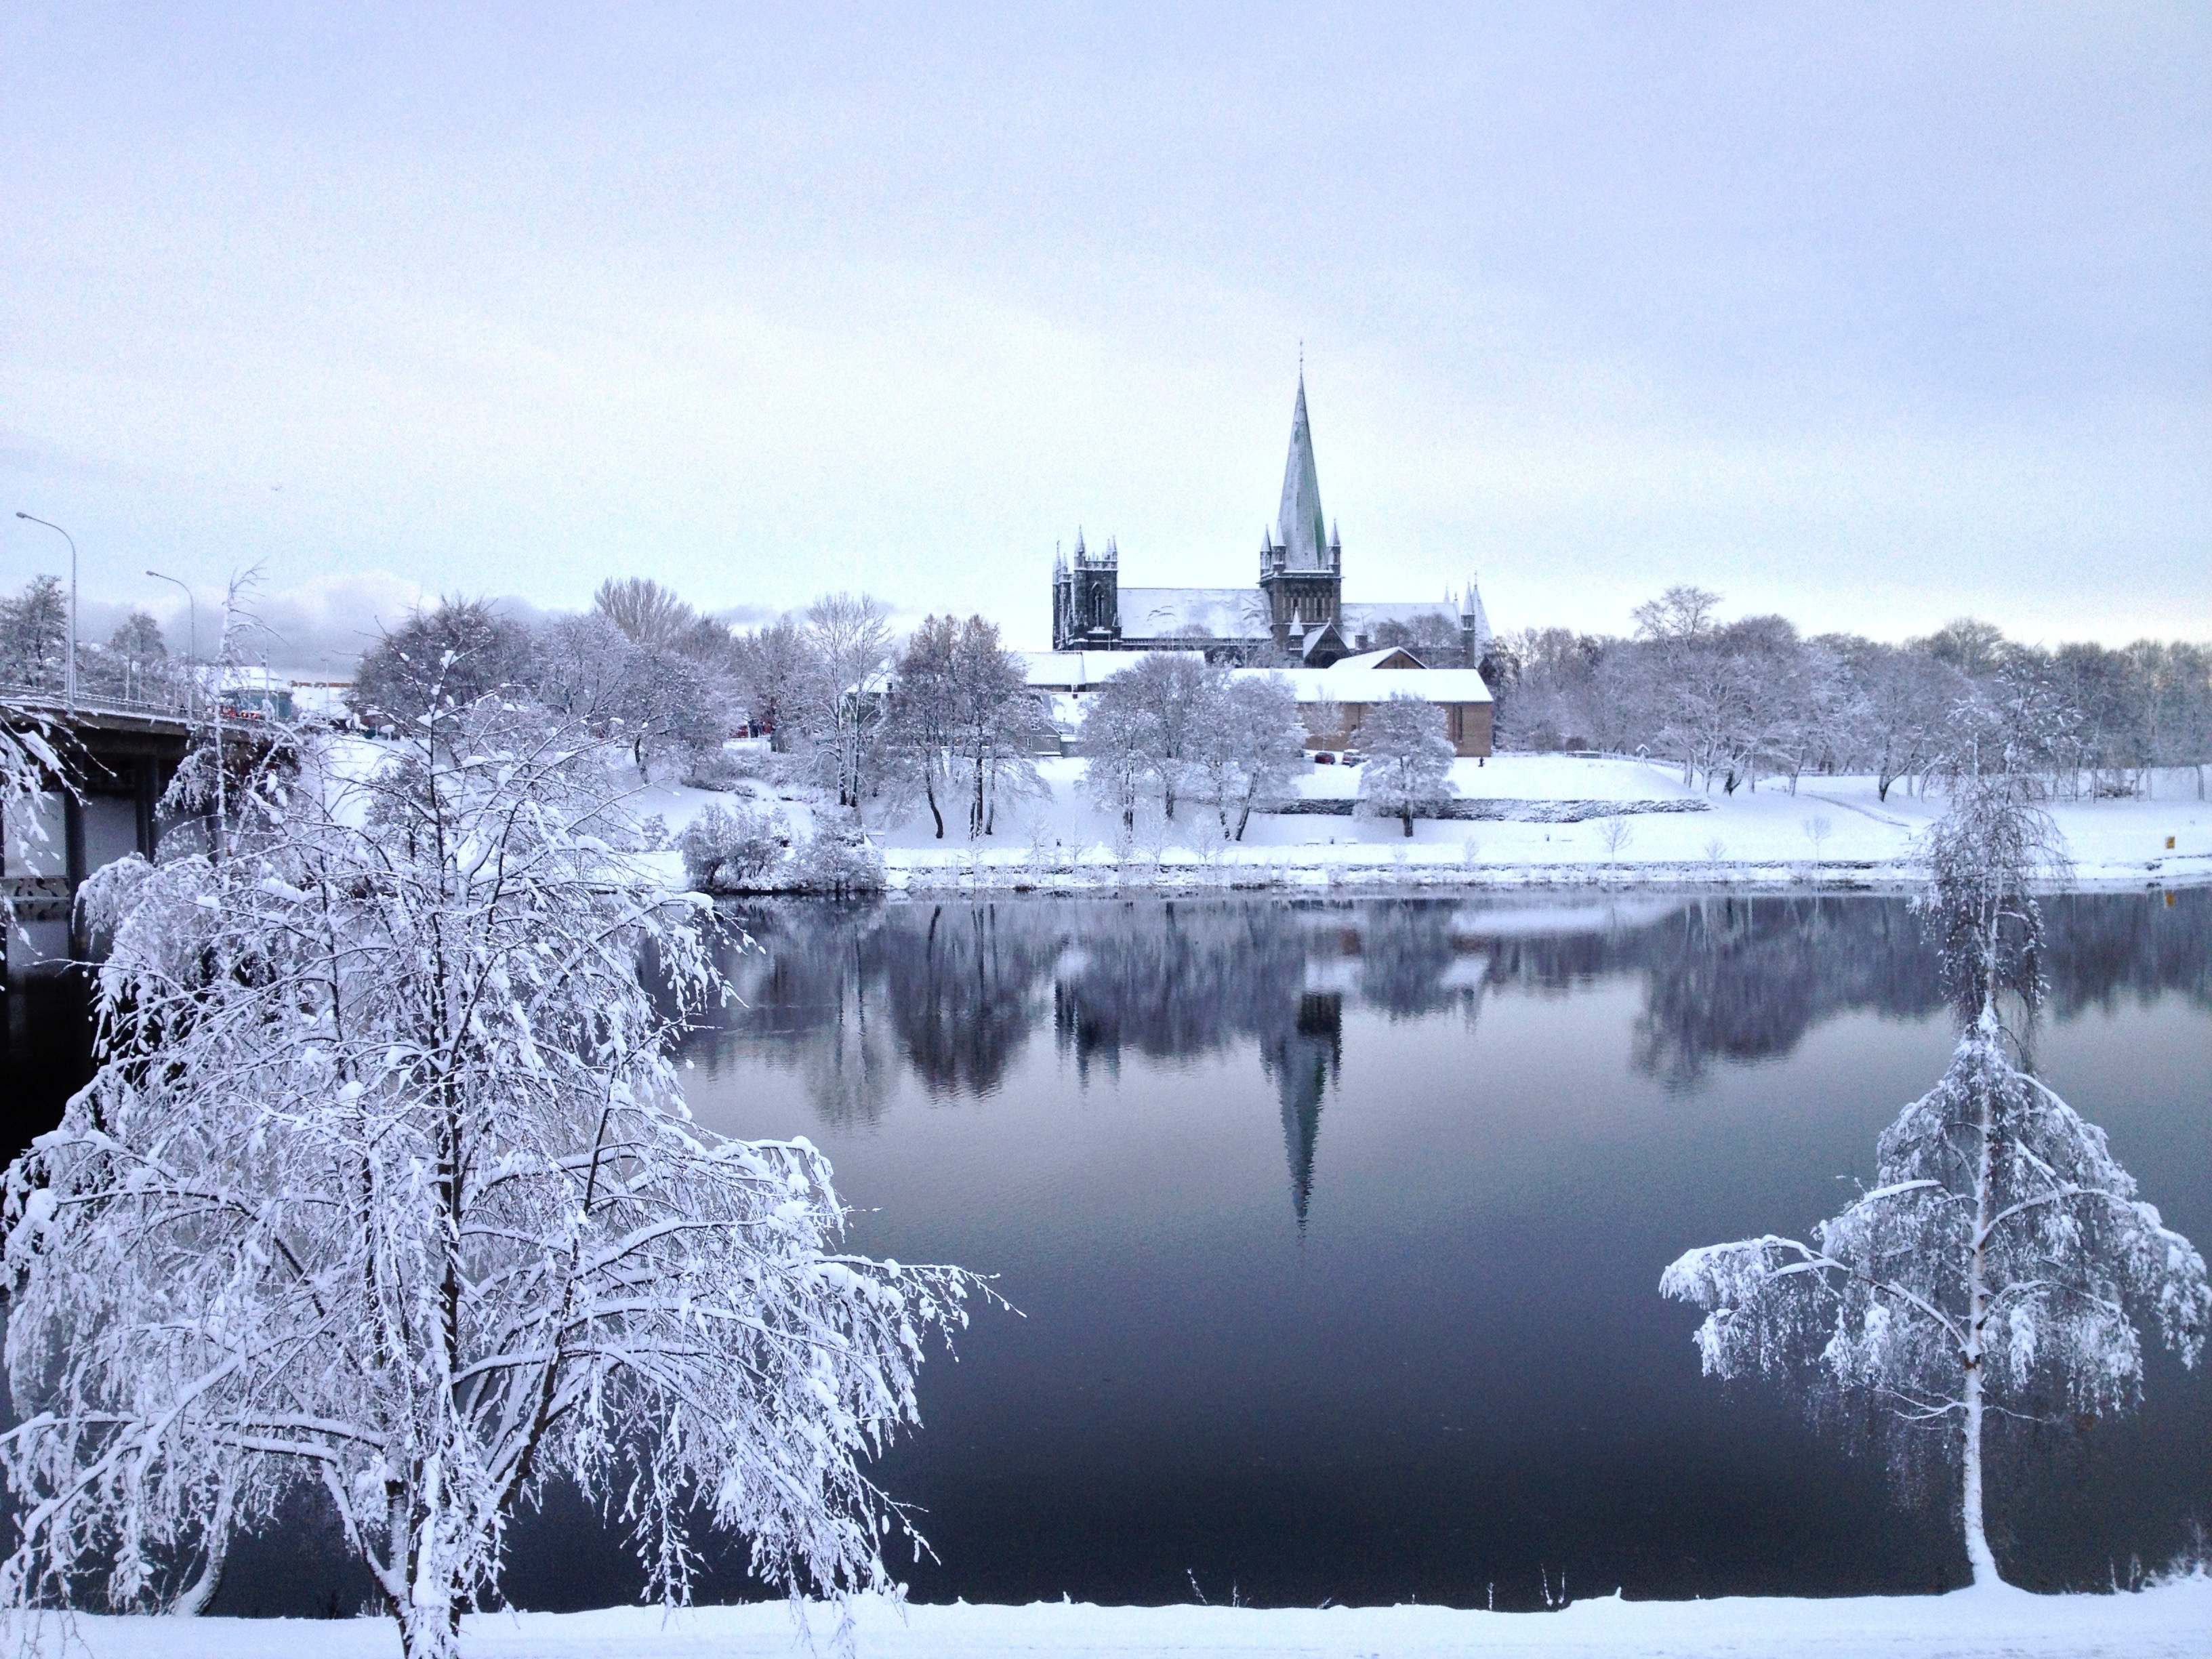 Trondheim church (called Nidarosdomen) in winter